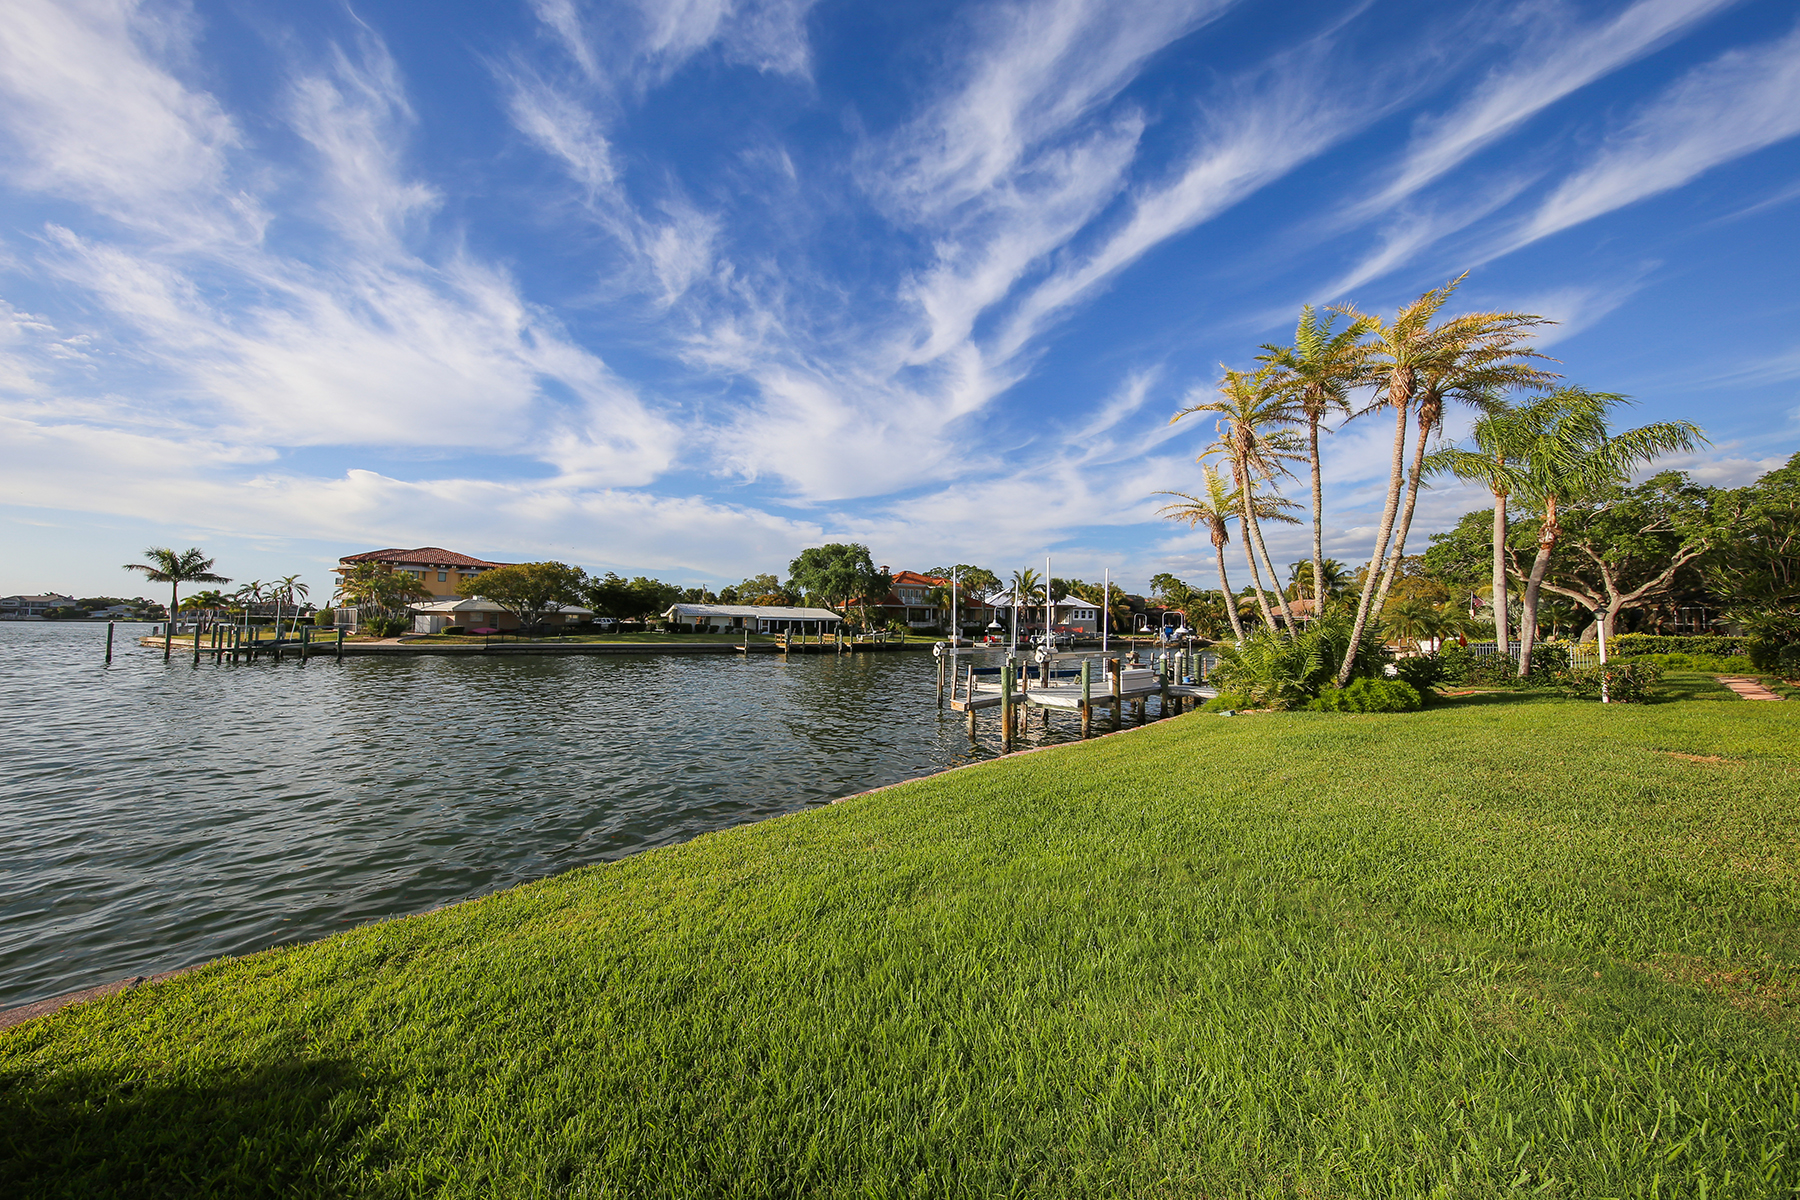 Single Family Home for Sale at SOUTHPOINTE SHORES 7688 Cove Terr Sarasota, Florida, 34231 United States